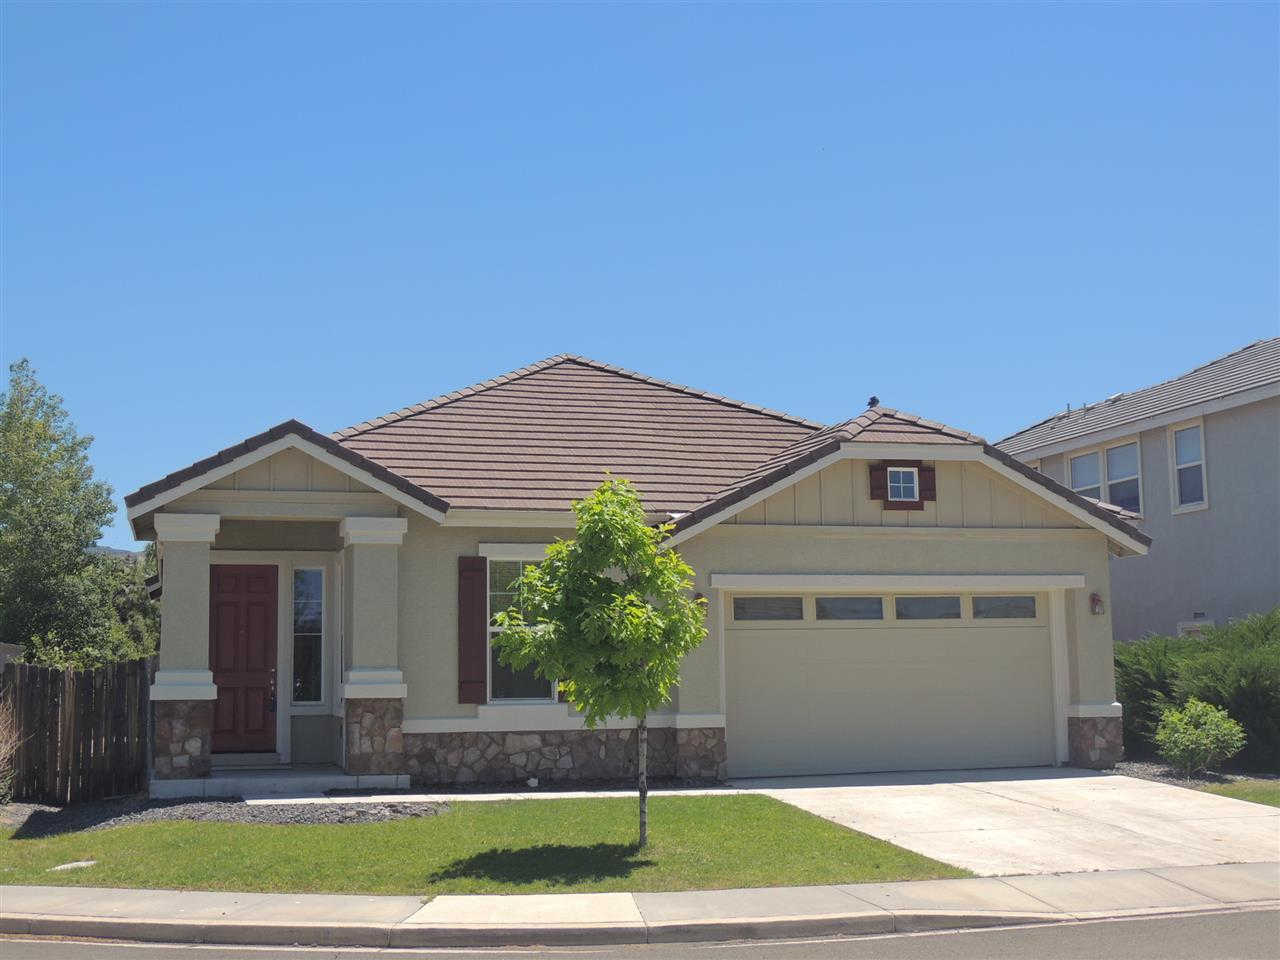 7426 Minkler Court, Sparks, NV 89436-5417 now has a new price of $389,000!